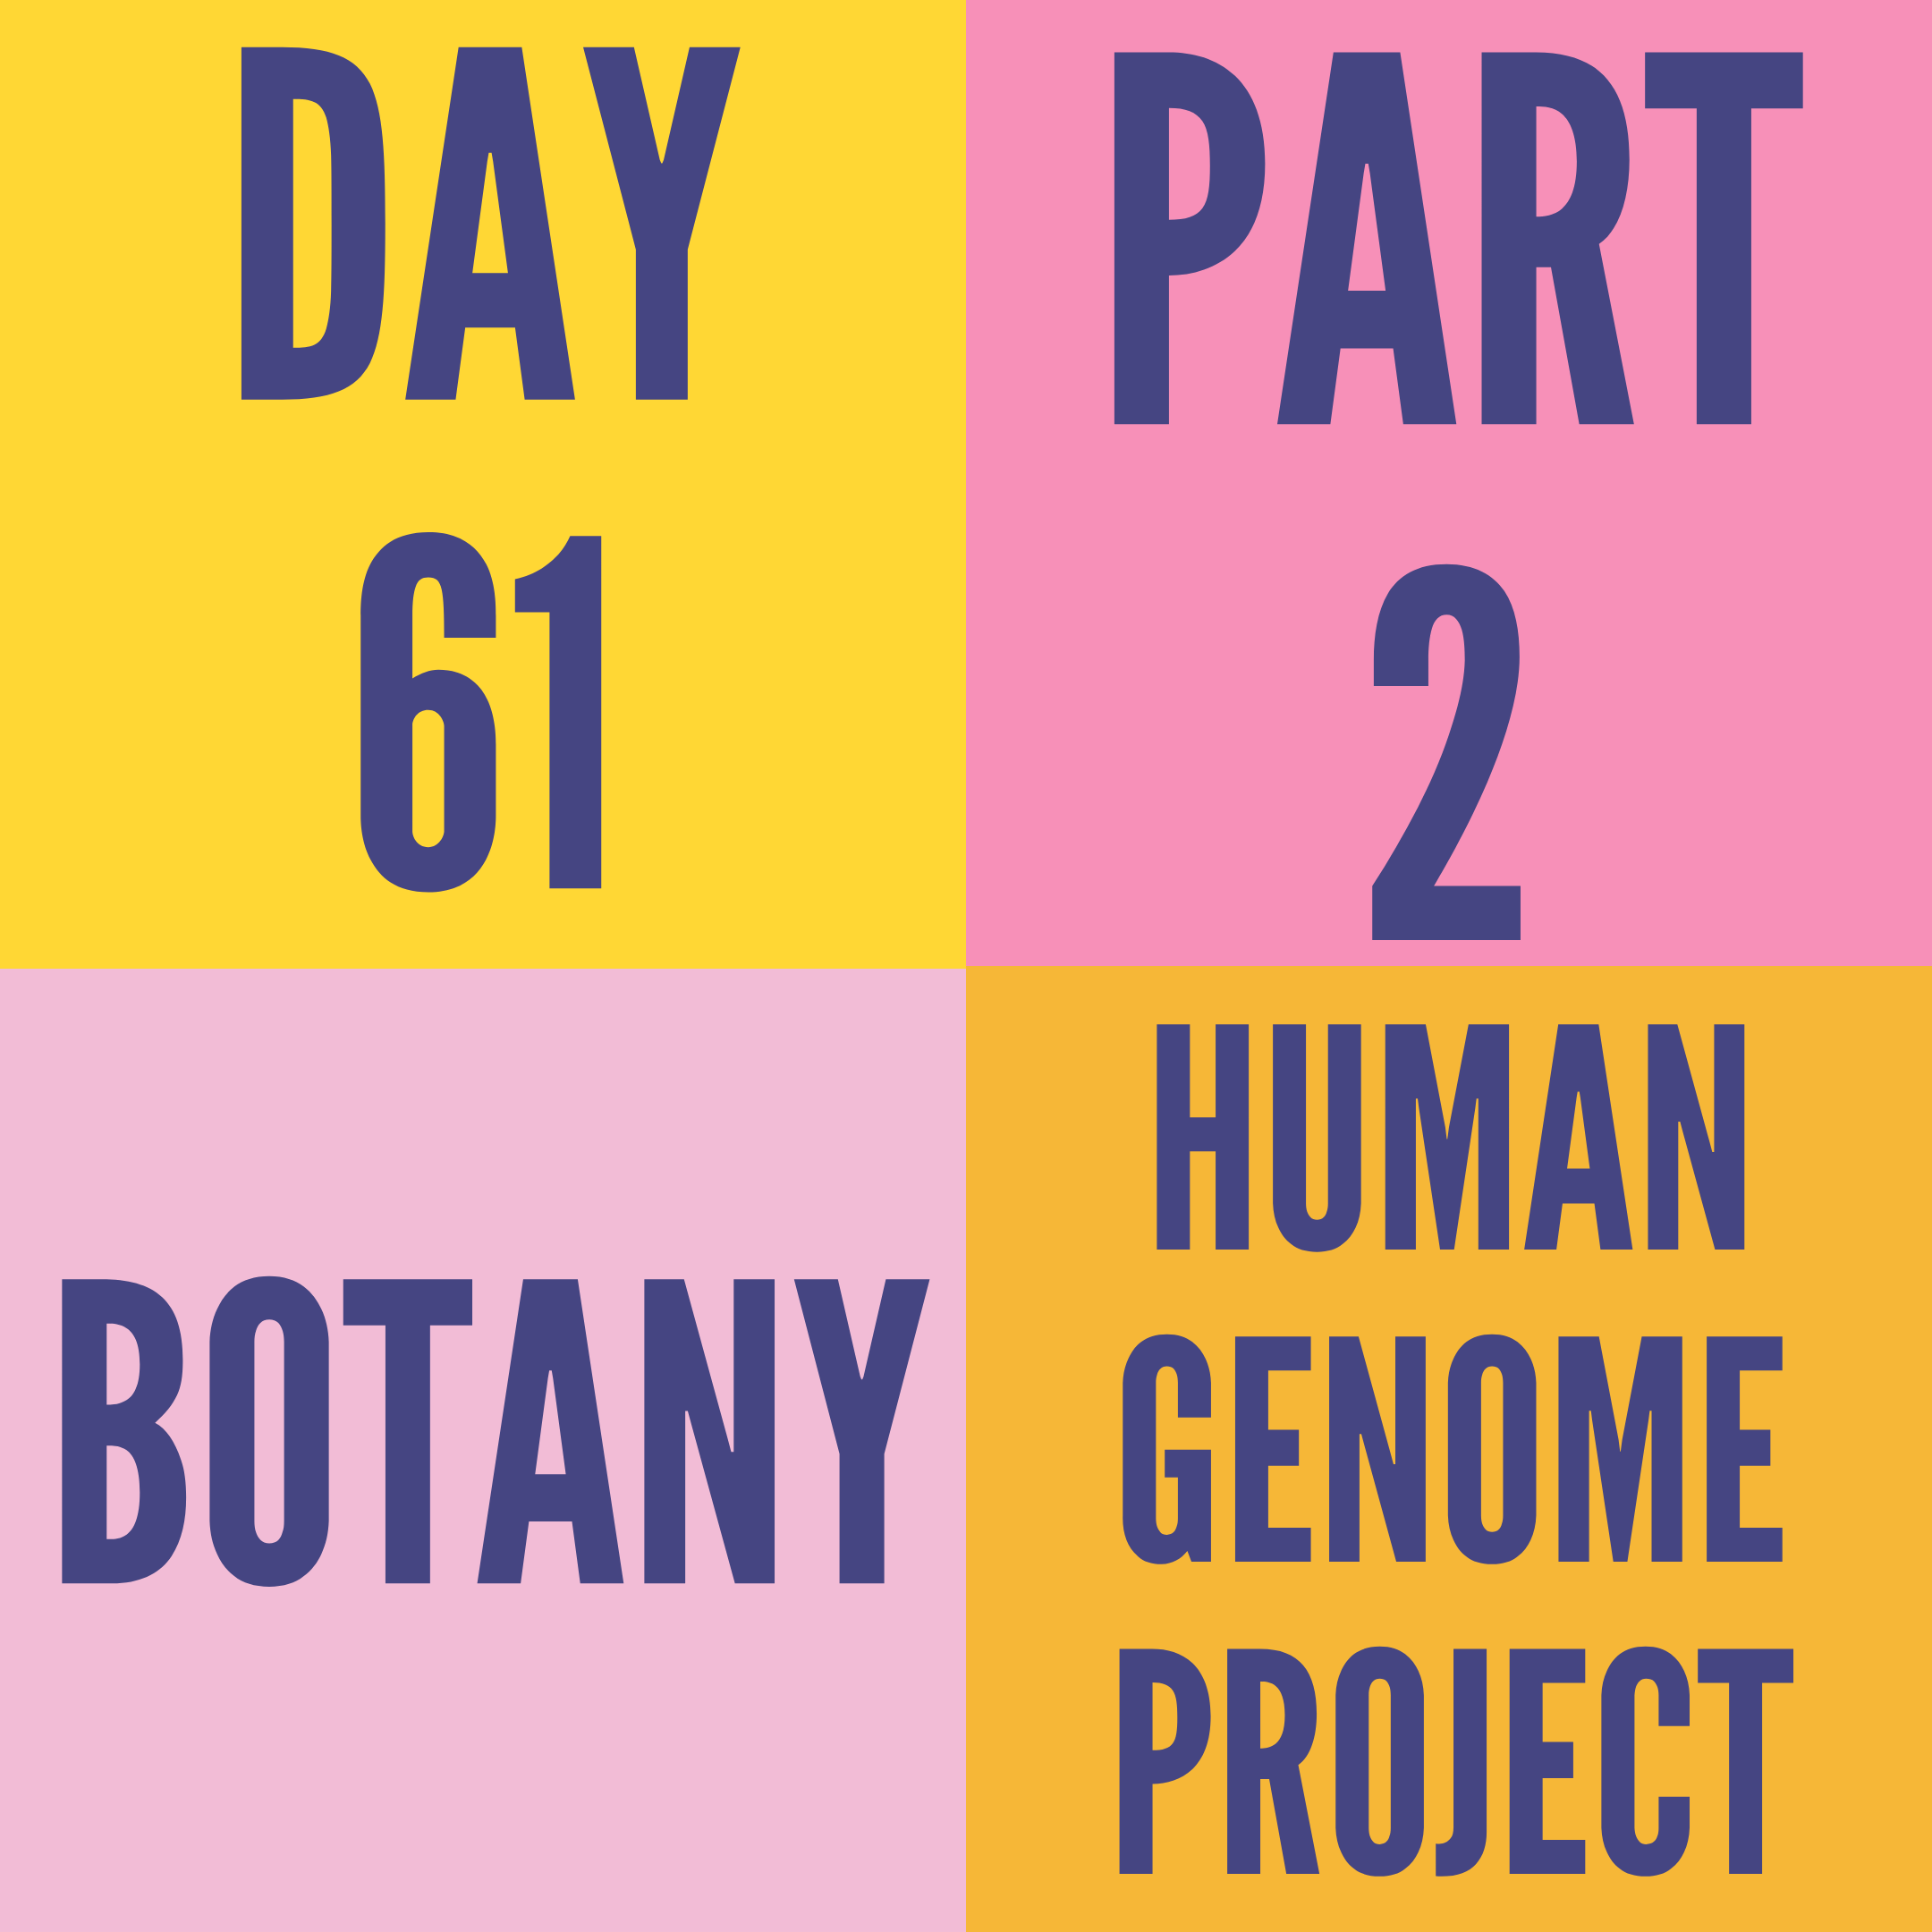 DAY-61 PART-2 HUMAN GENOME PROJECT